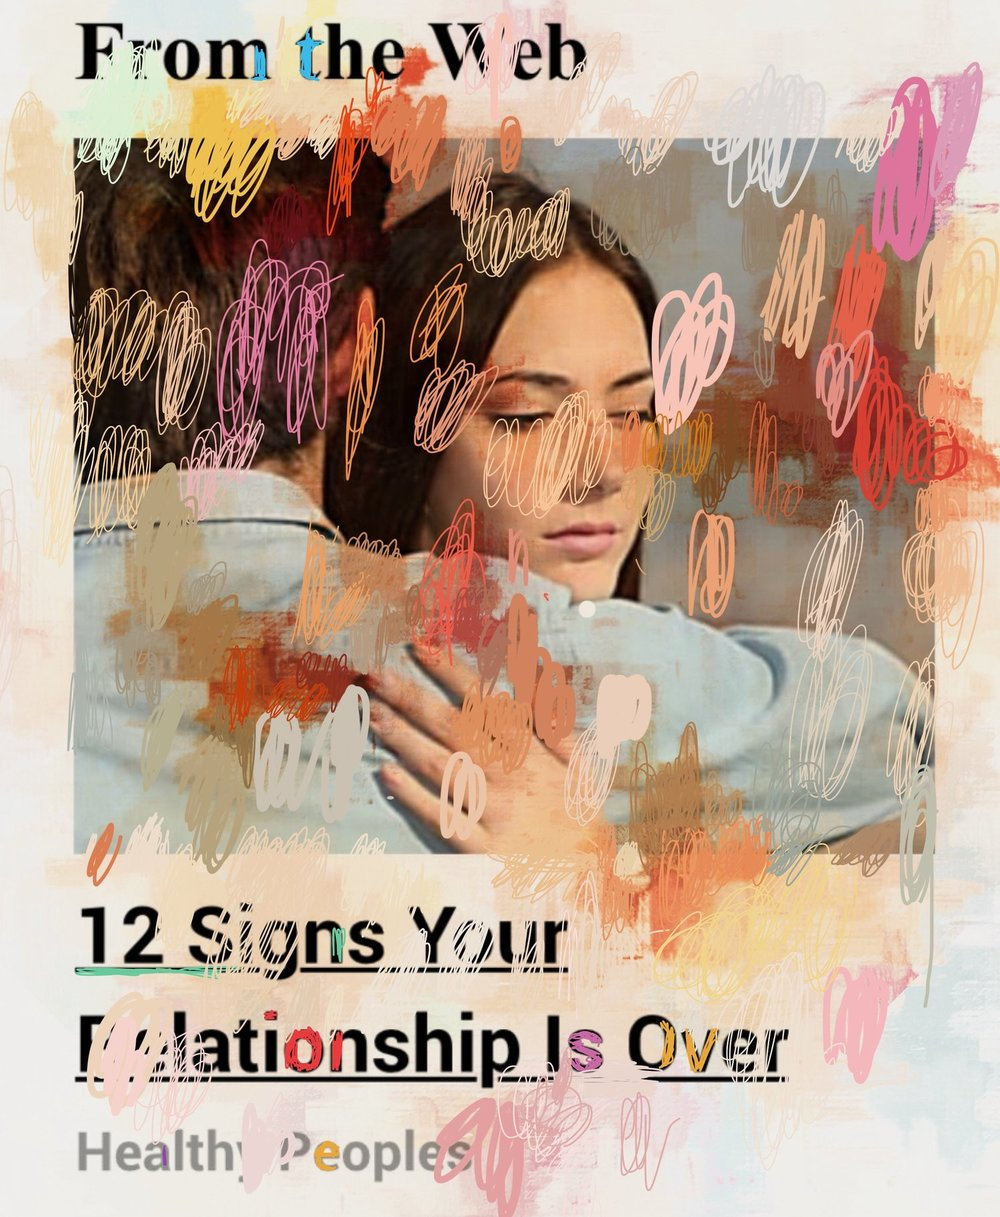 """12 Signs Your Relationship Is Over"", iPhone 6S, digital image."